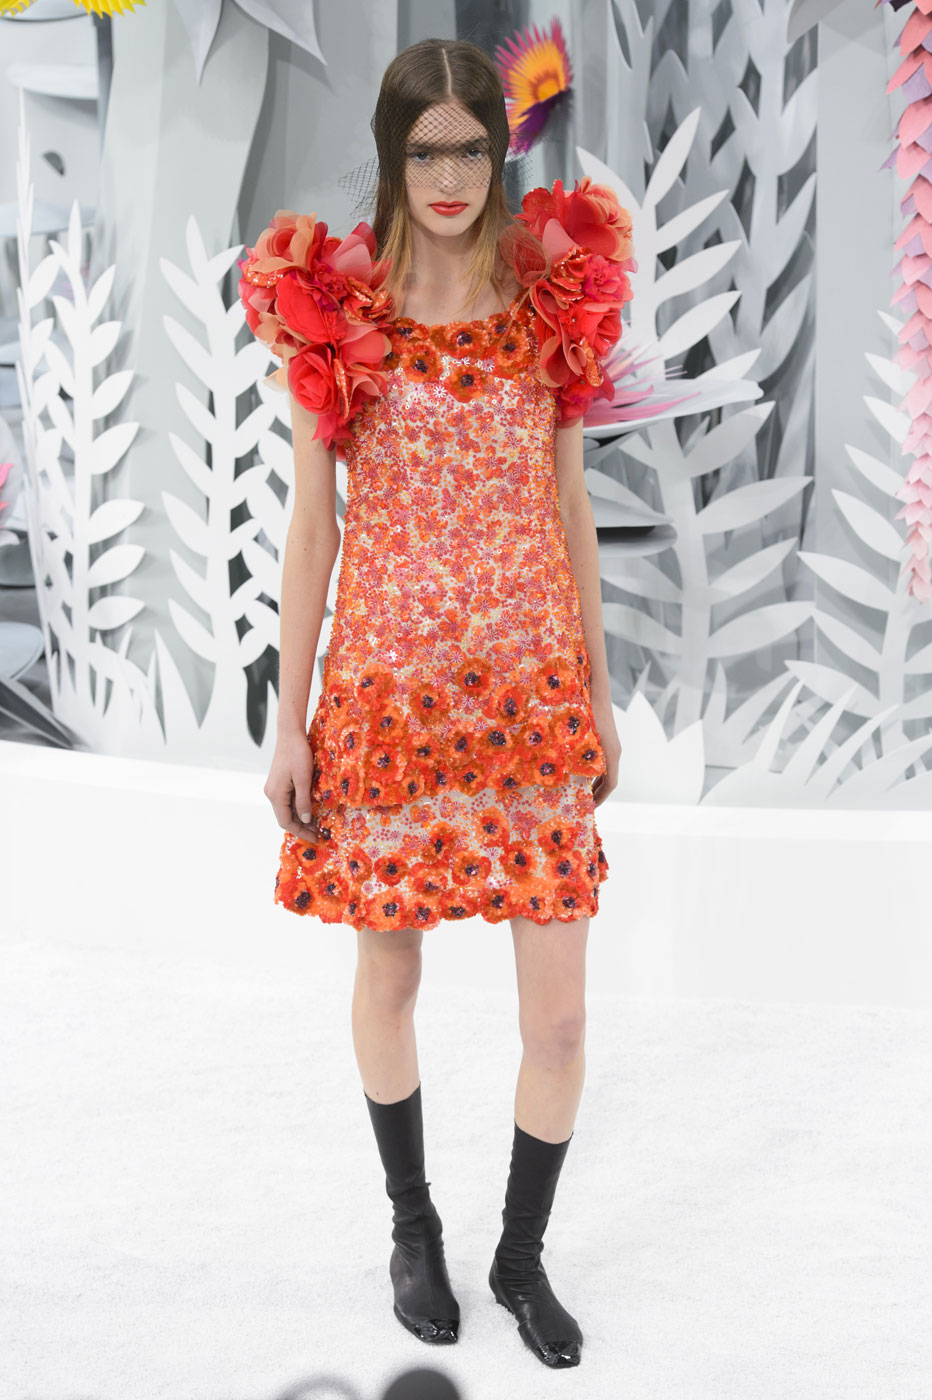 Chanel-fashion-runway-show-haute-couture-paris-spring-summer-2015-the-impression-090